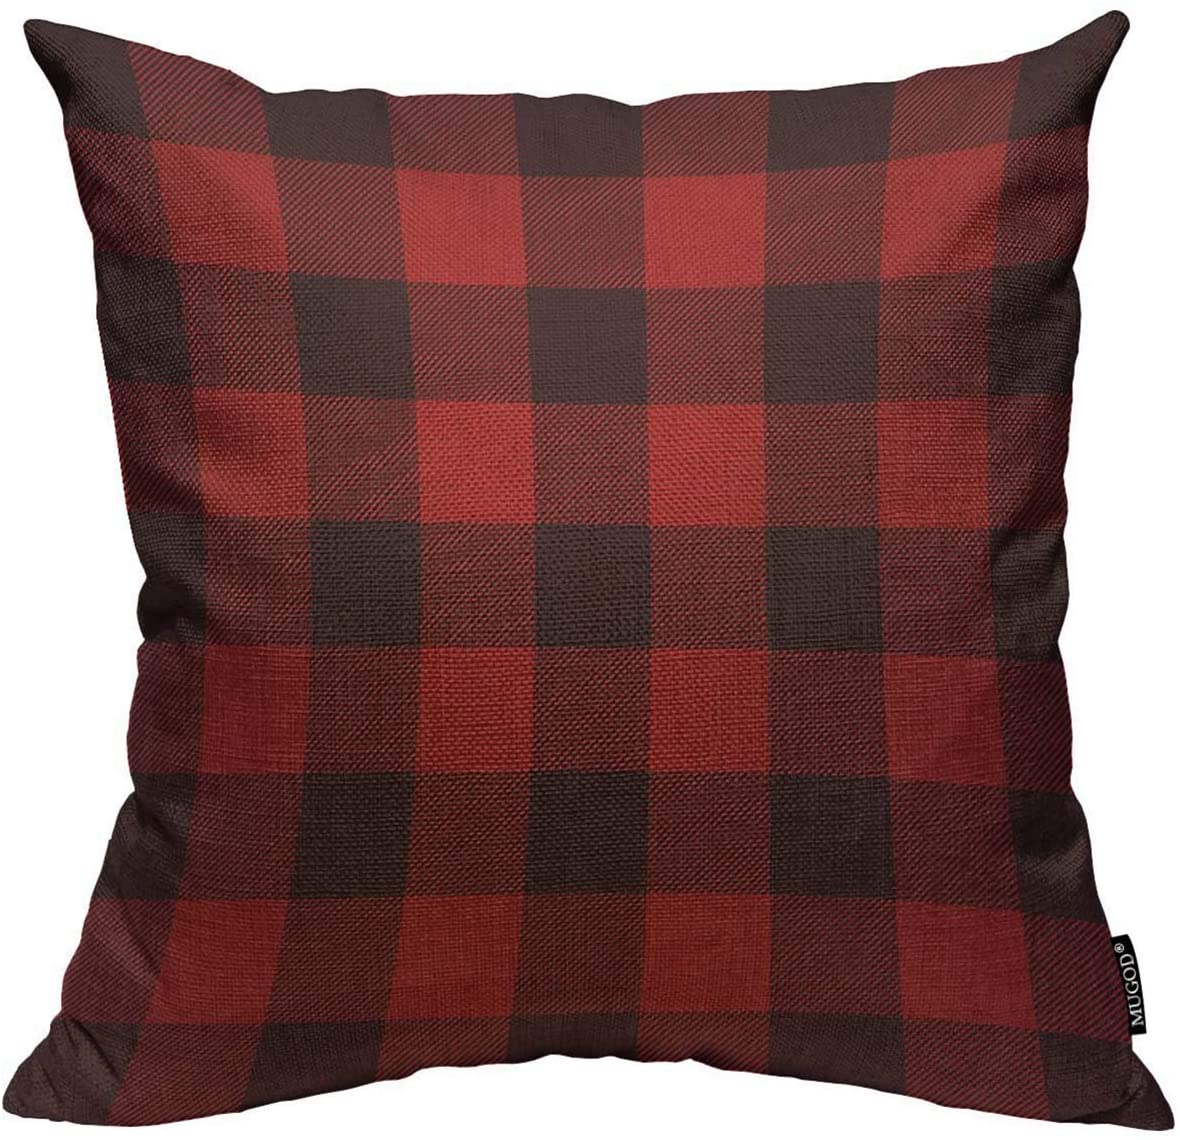 Mugod Buffalo Plaid Throw Pillow Cover Classic Lumberjack Plaid Pattern in Red and Black Home Decorative Square Pillow Case for Men Women Kids Bedroom Livingroom Cushion Cover 18